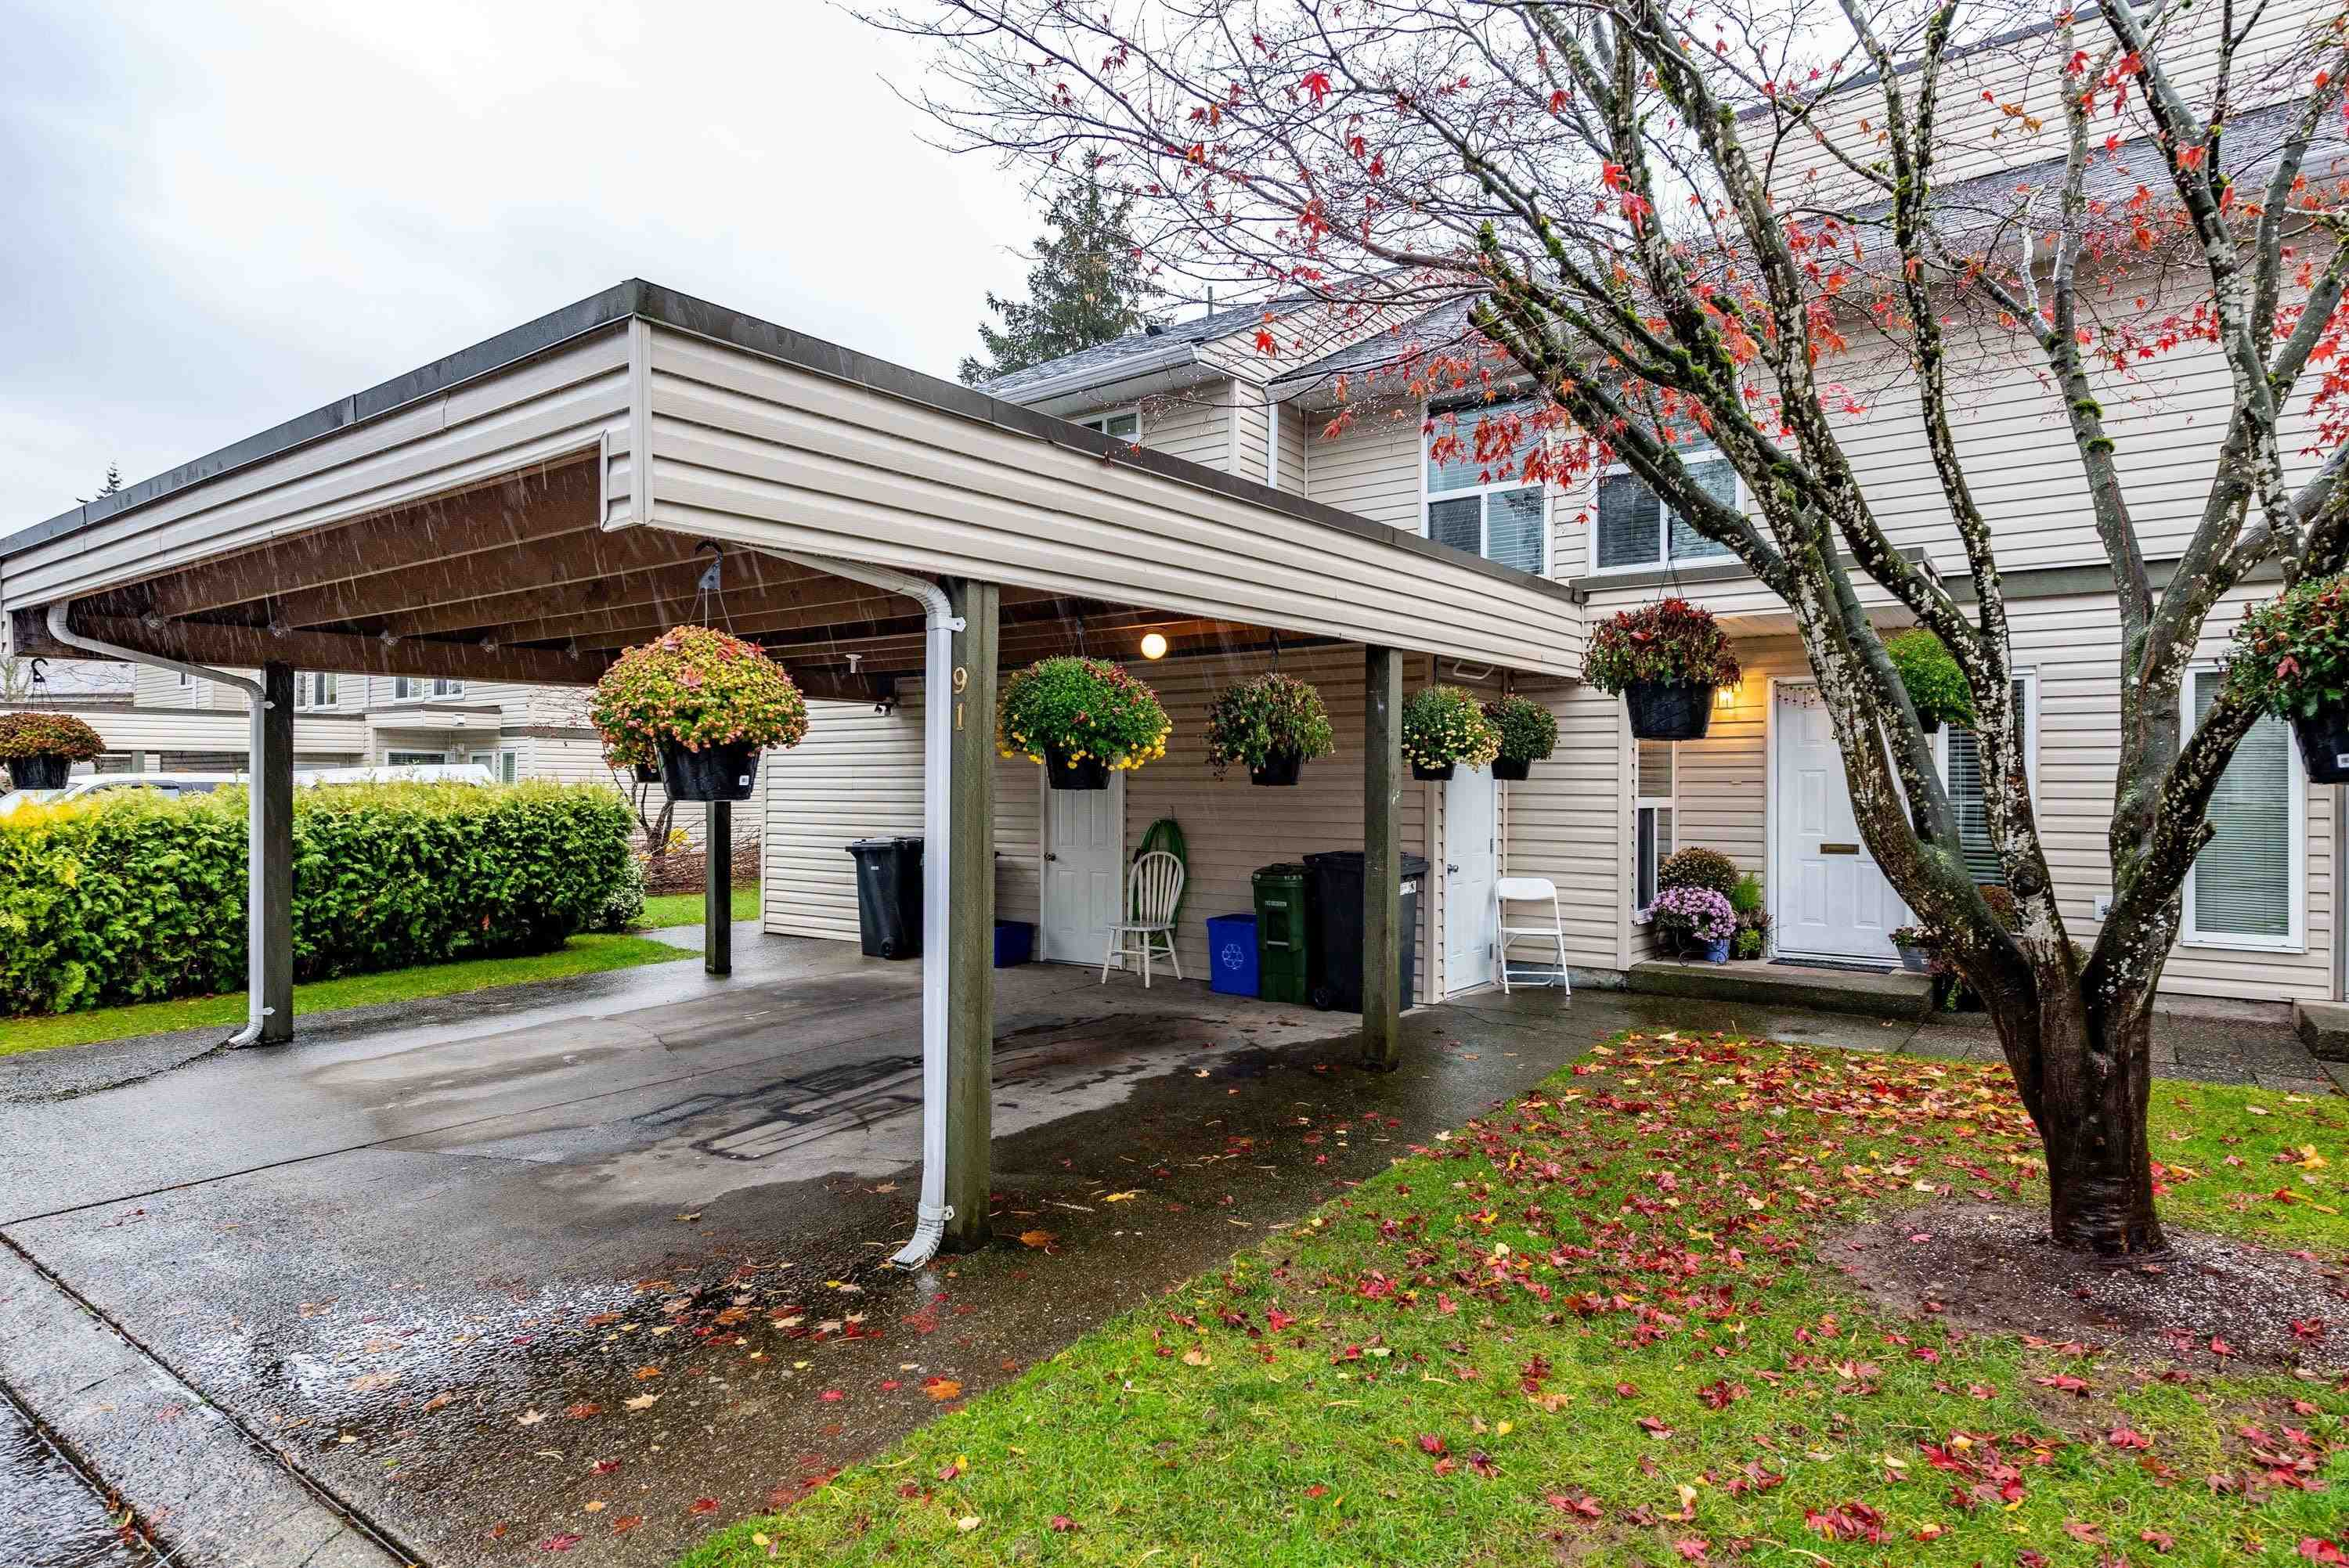 91 3030 TRETHEWEY STREET - Abbotsford West Townhouse for sale, 3 Bedrooms (R2622833) - #1